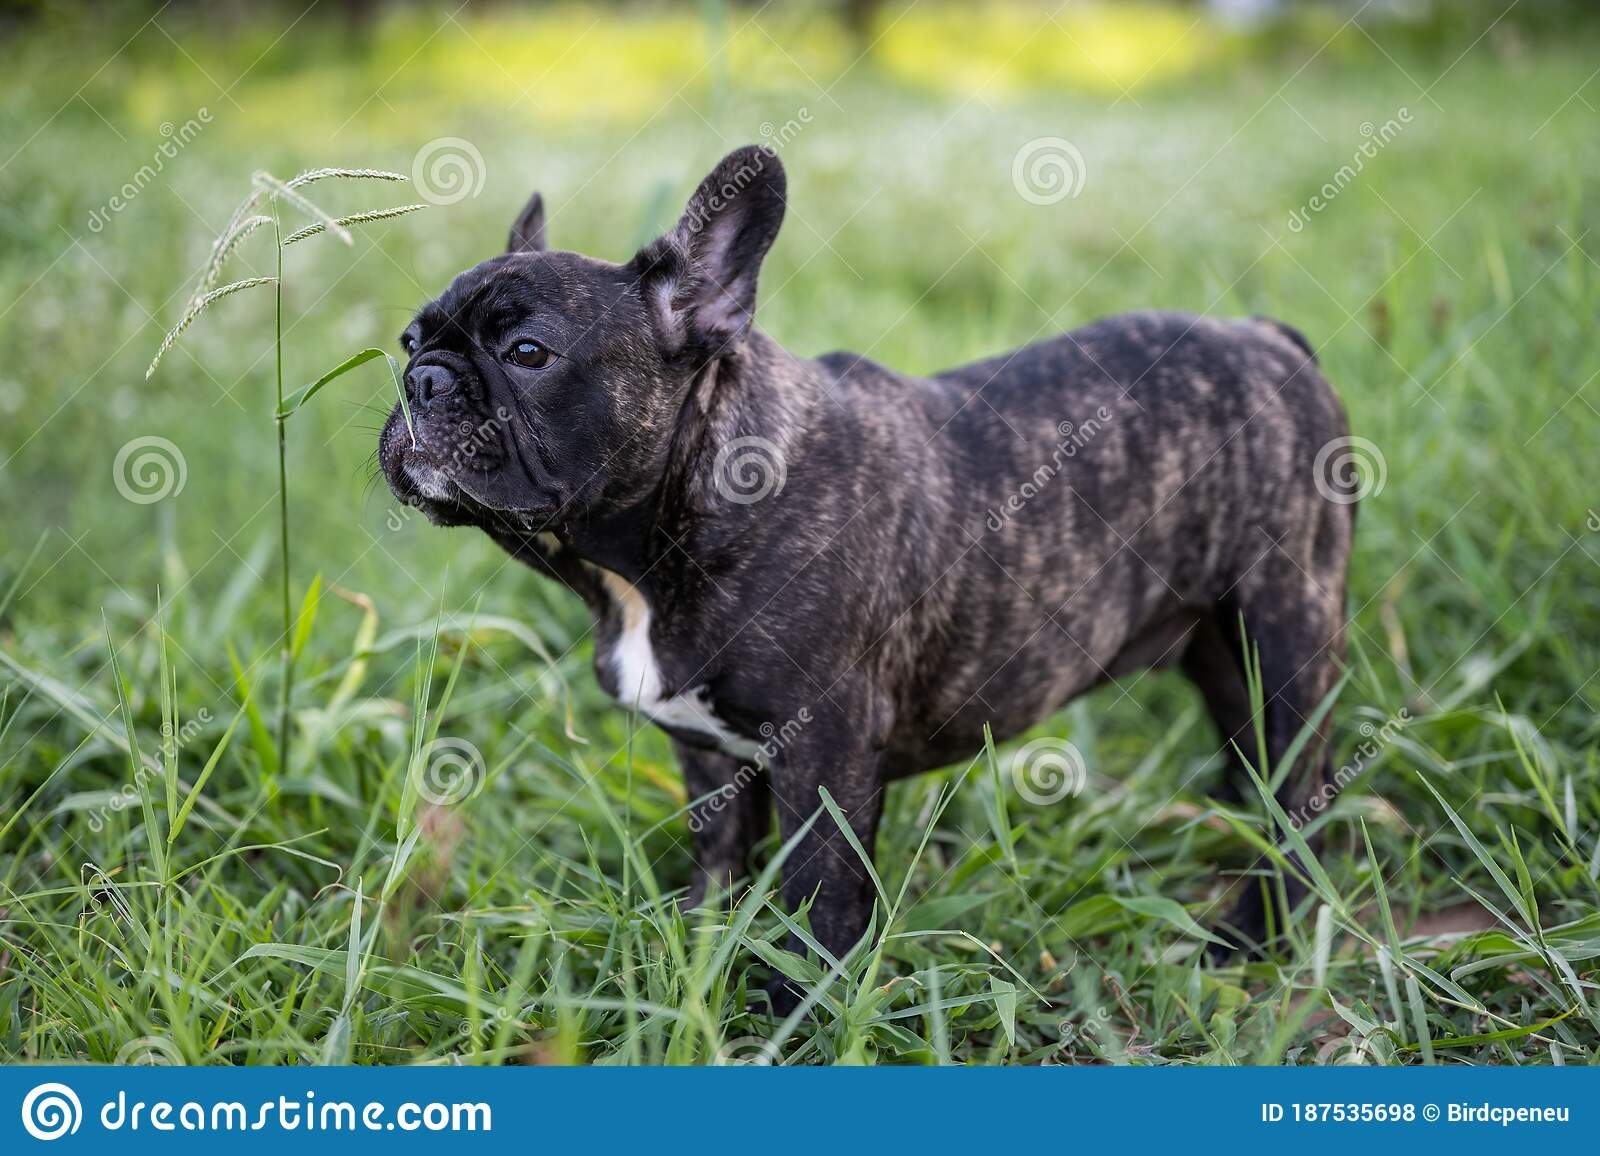 Brindle French Bulldog Puppy Standing Alone Outdoor Stock Photo Image Of Male Closeup 187535698